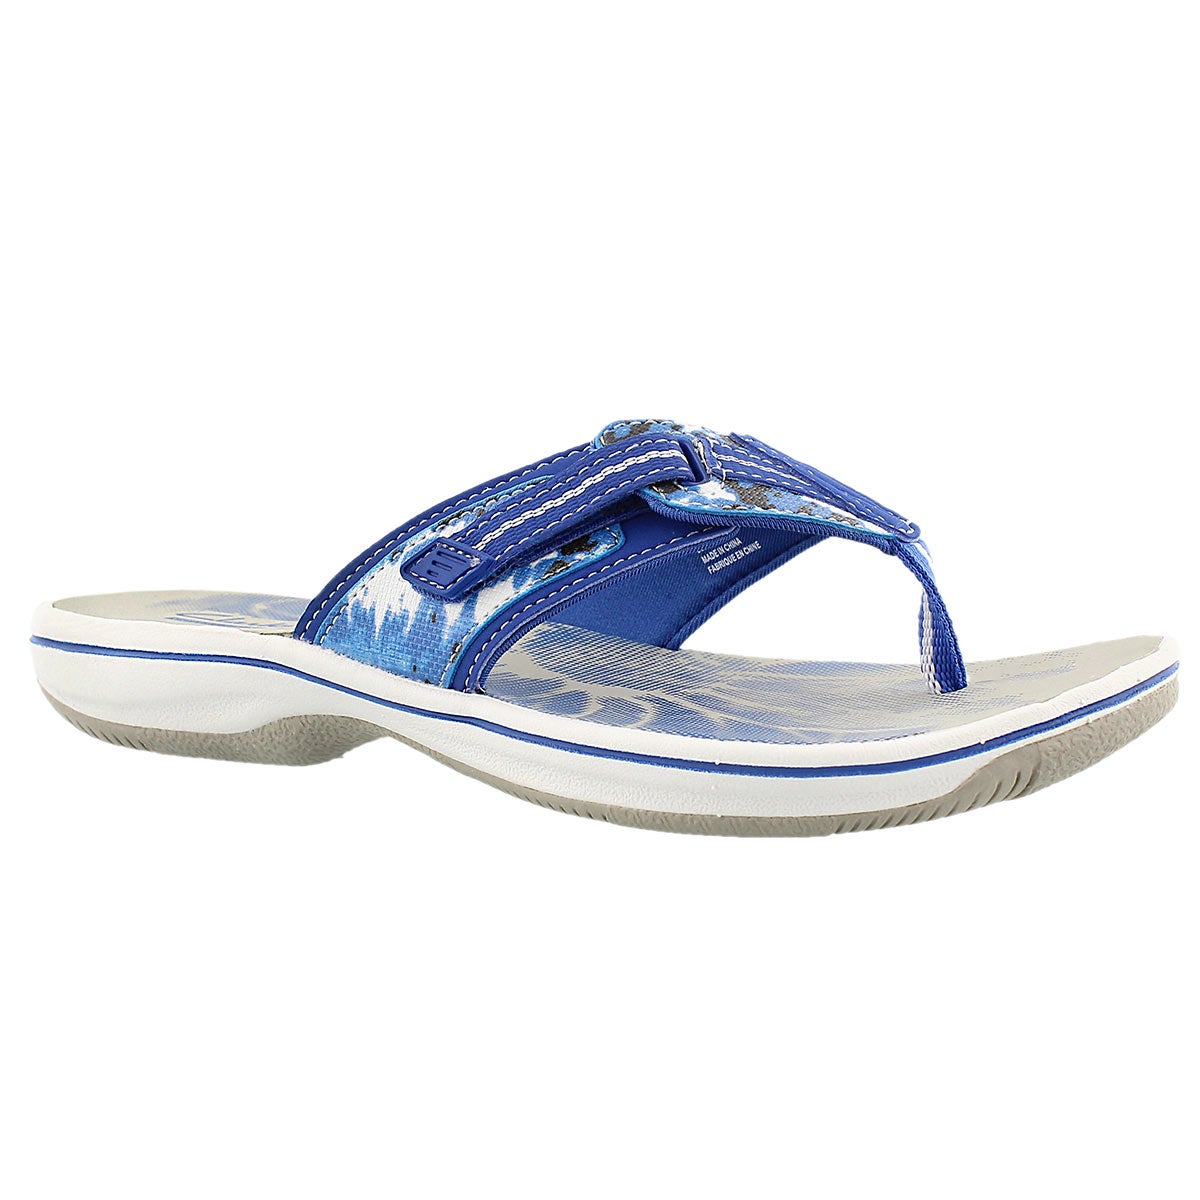 Women's BRINKLEY JAZZ blue camo thong sandals